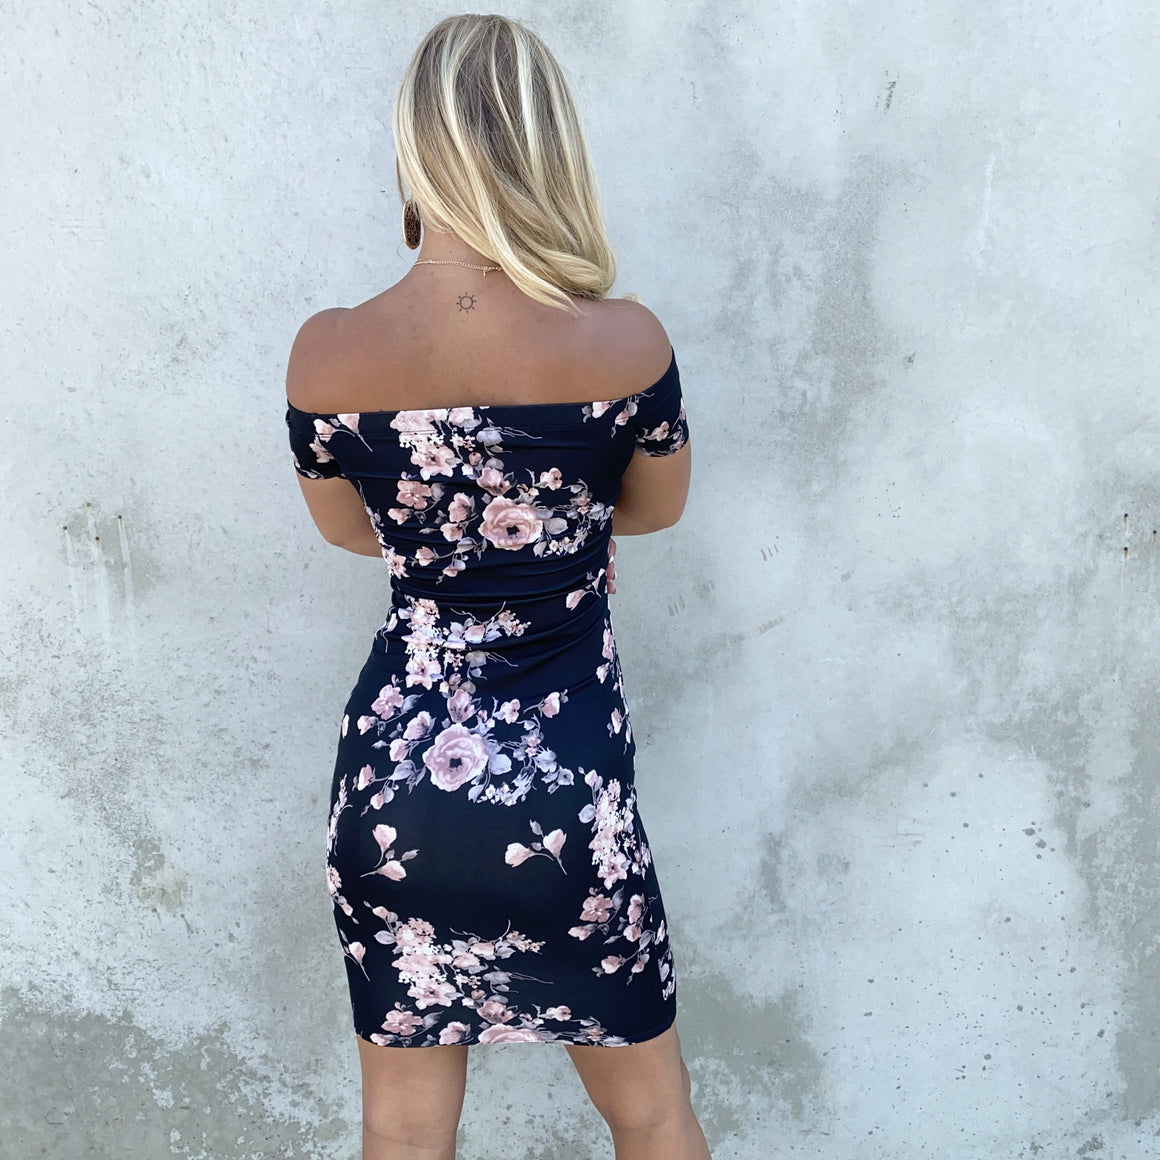 Floral Lust Black Off Shoulder Dress - Dainty Hooligan